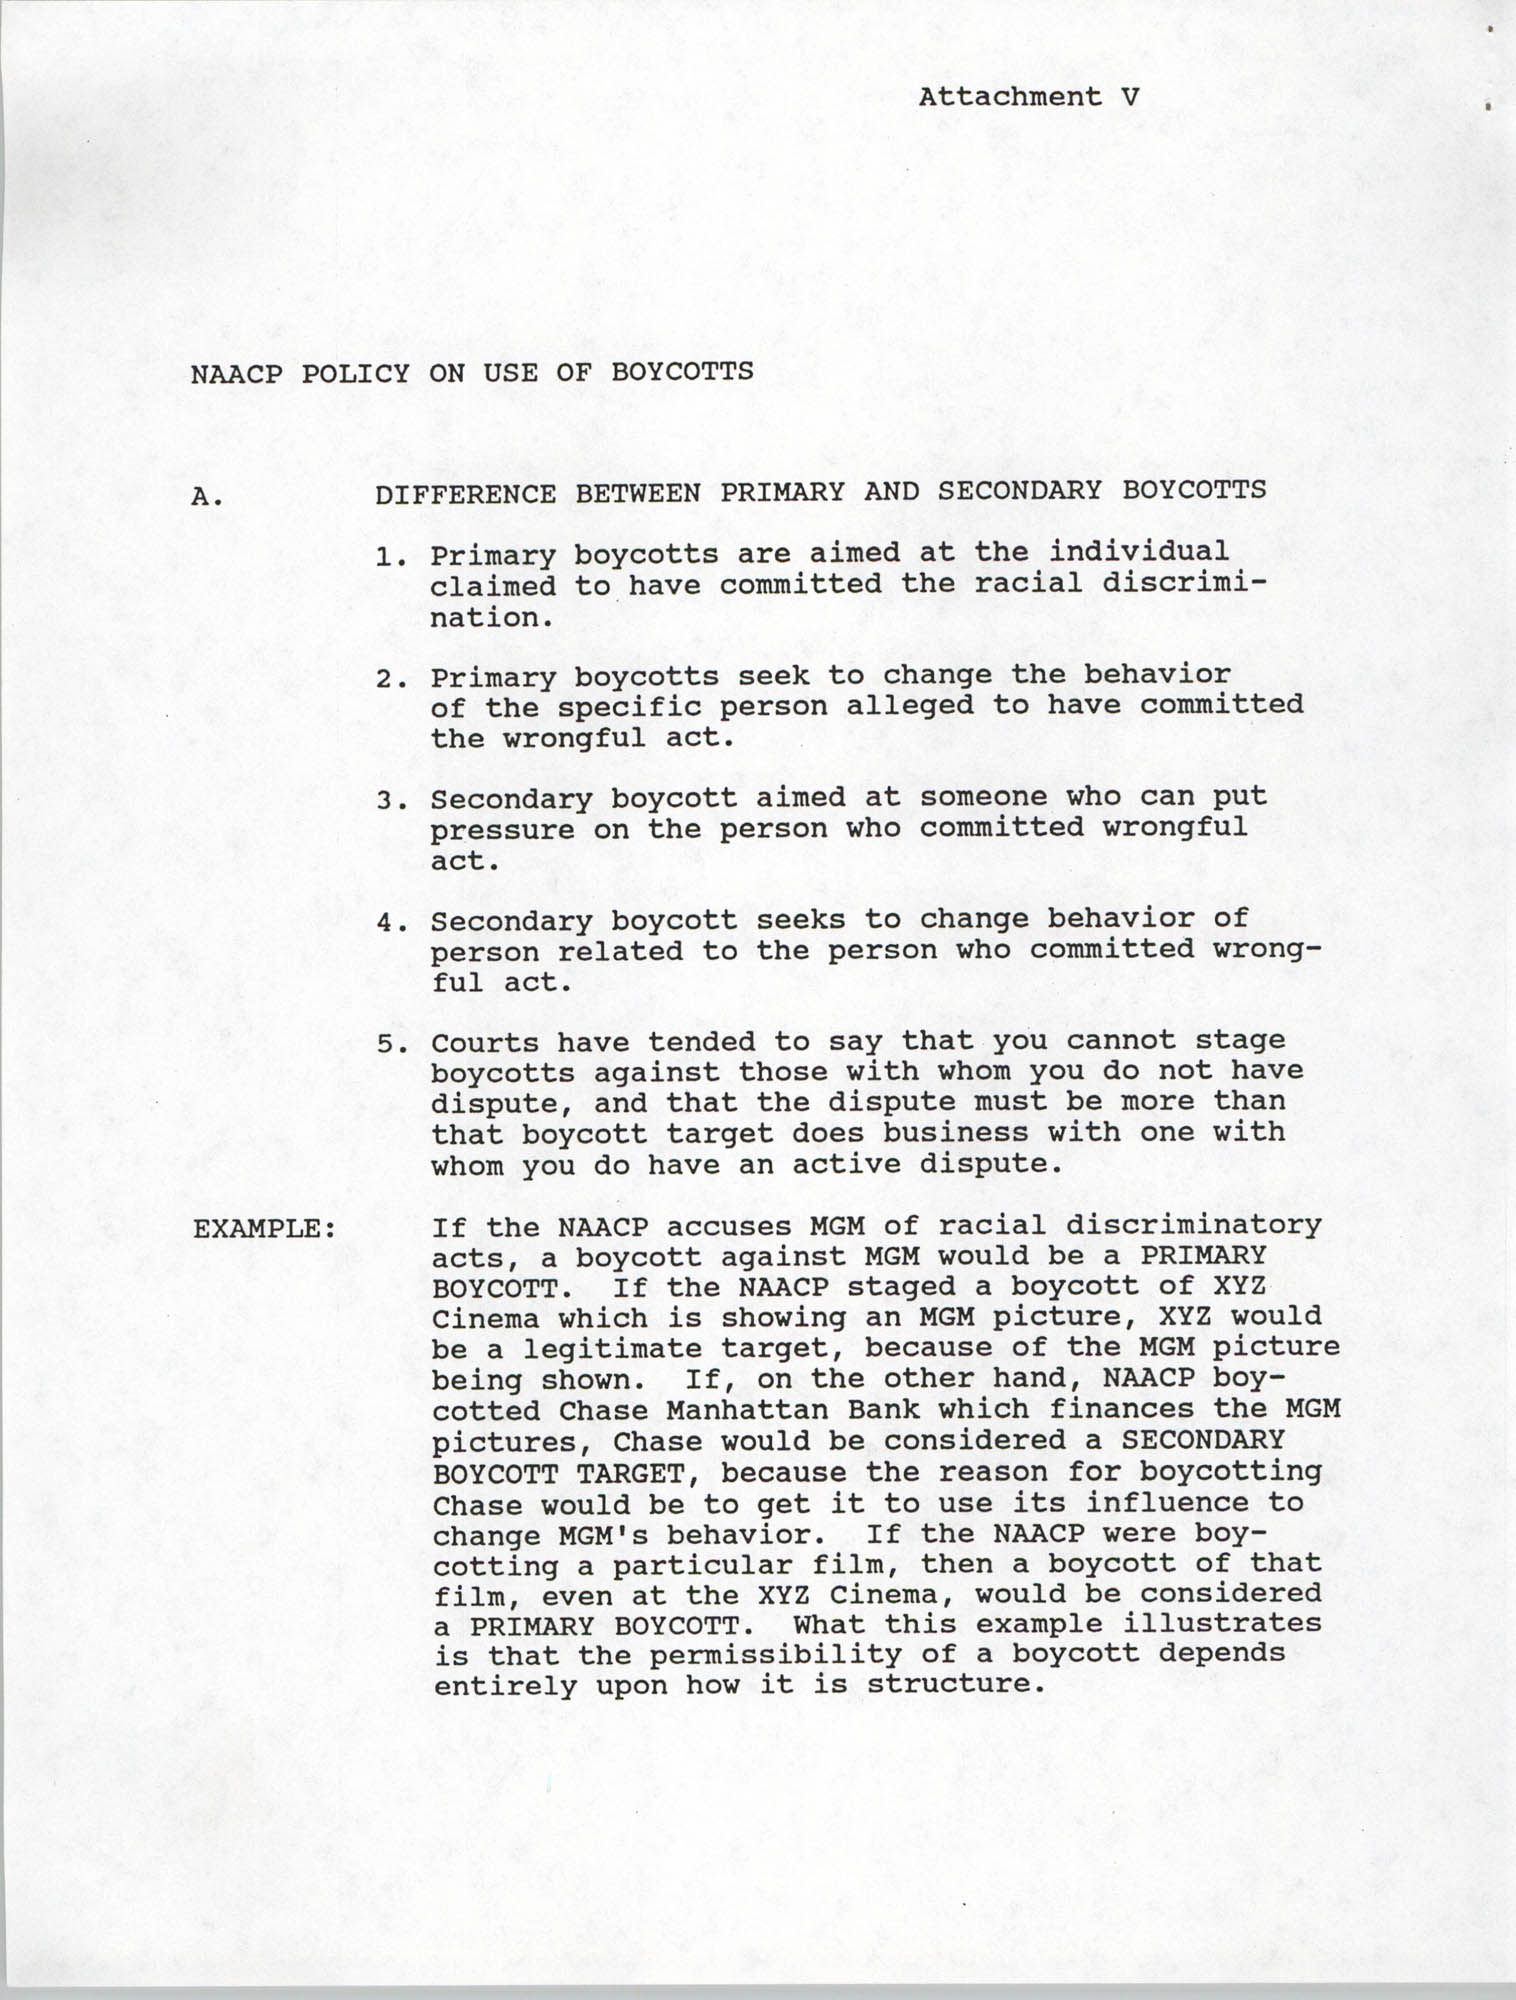 Operation Fair Share Guidelines for NAACP Branches, Attachment V, Page 1